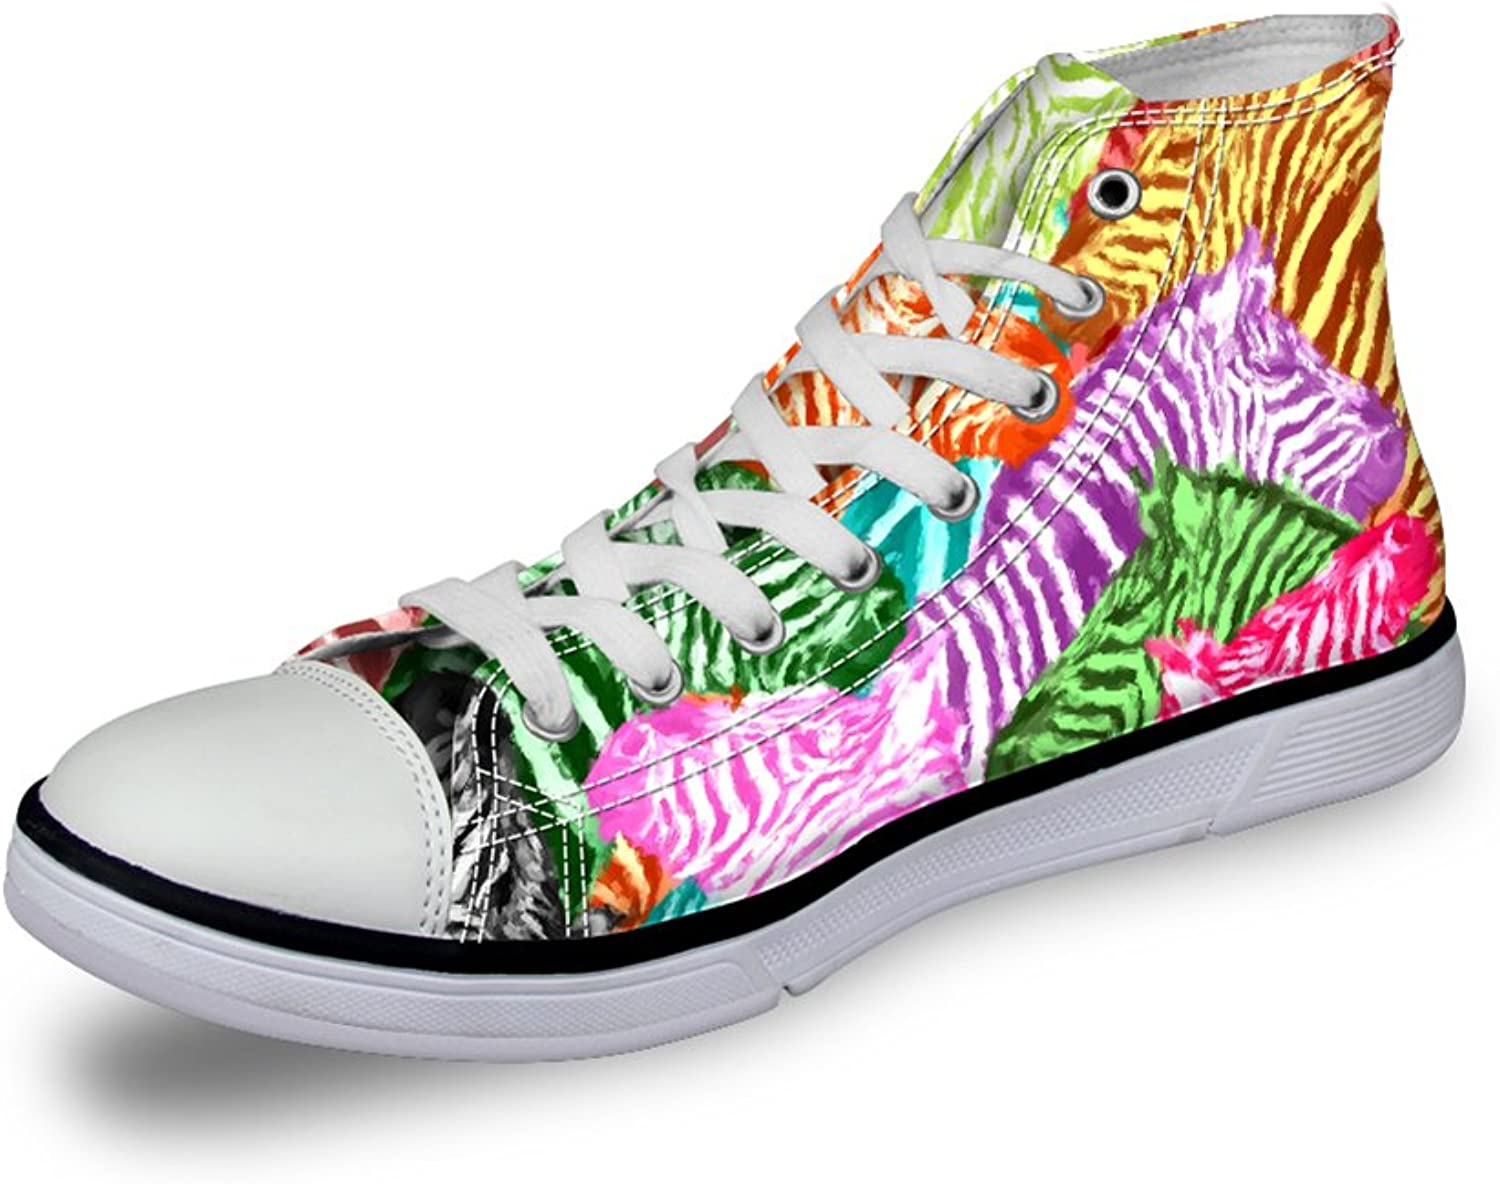 Chaqlin Women High-Top Canvas shoes Tropical Floral Design Lace-Up Ankle Sneakers